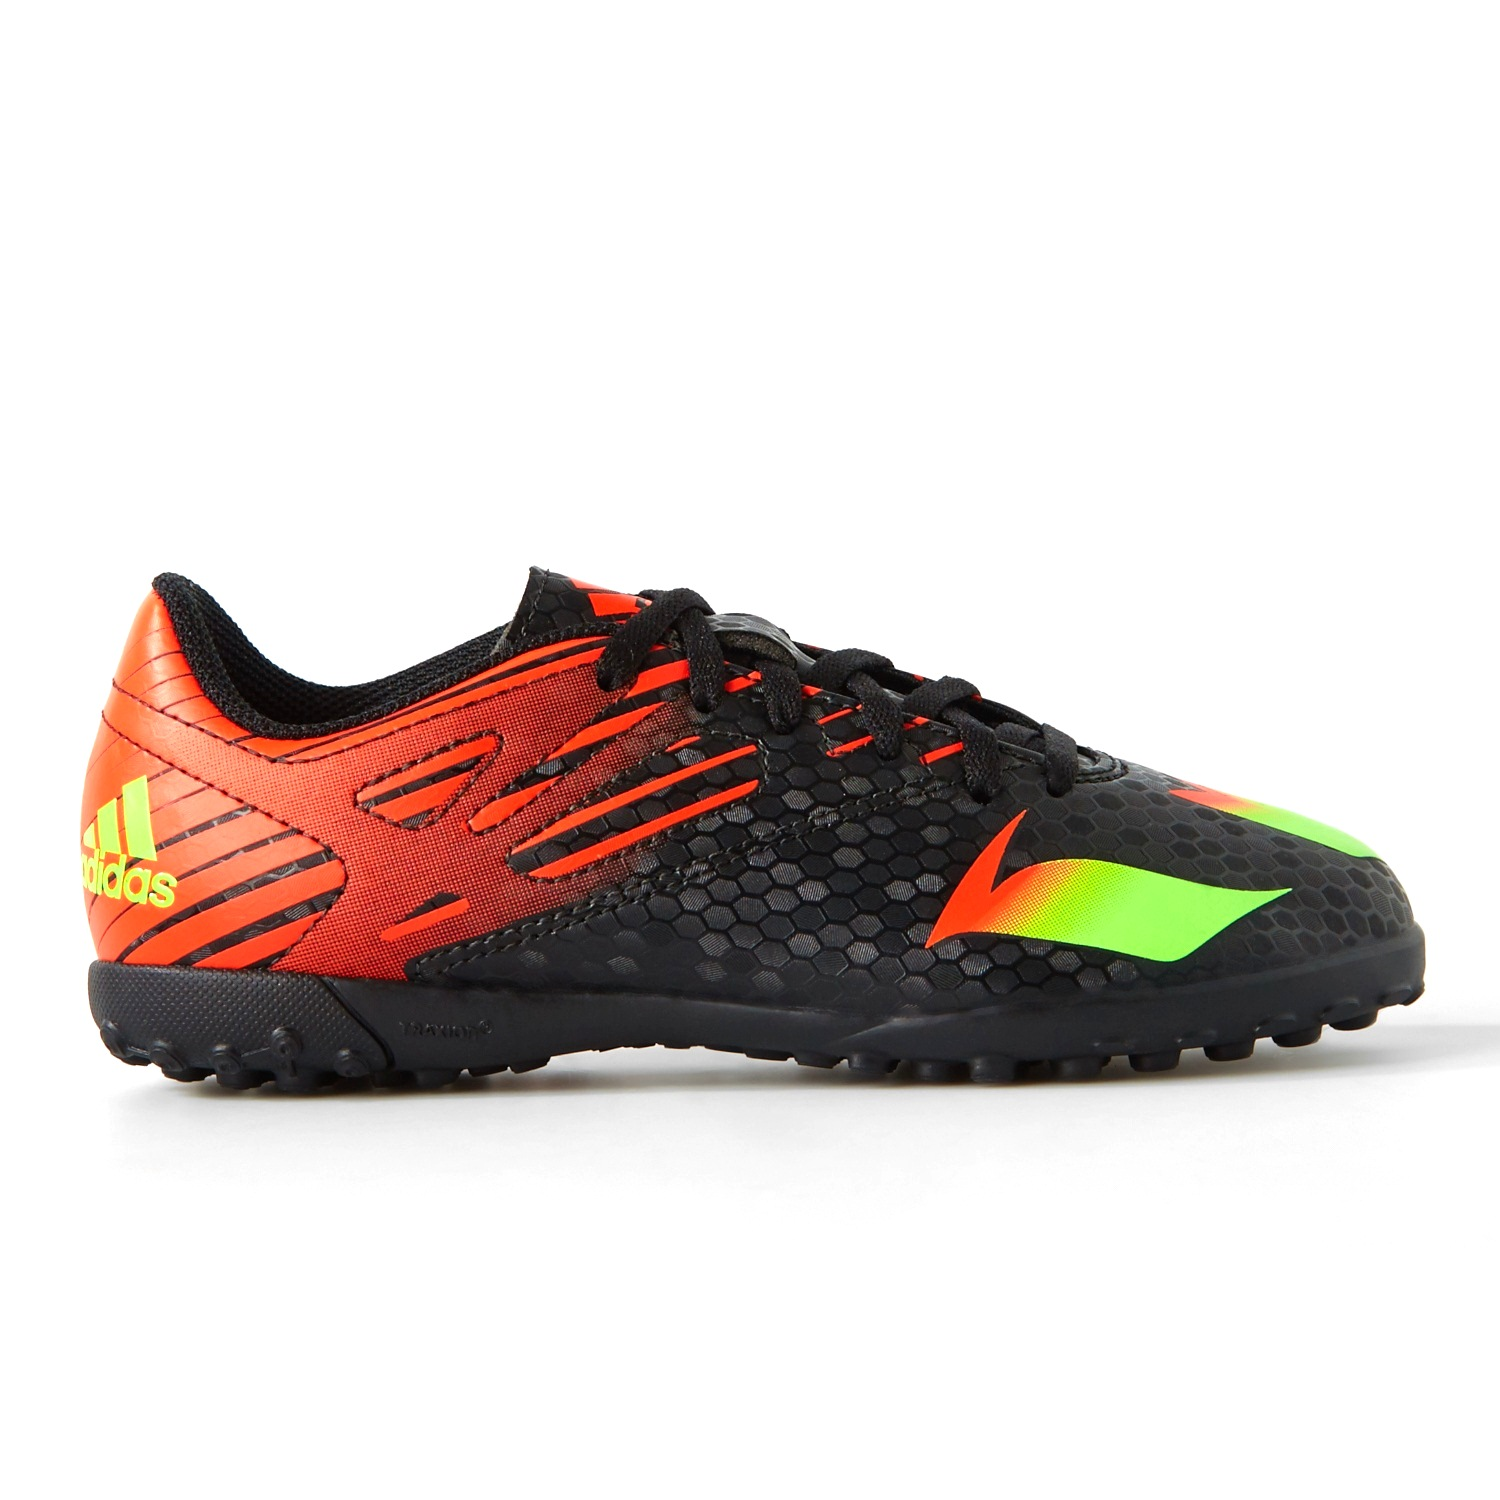 adidas messi 15.4 built to win